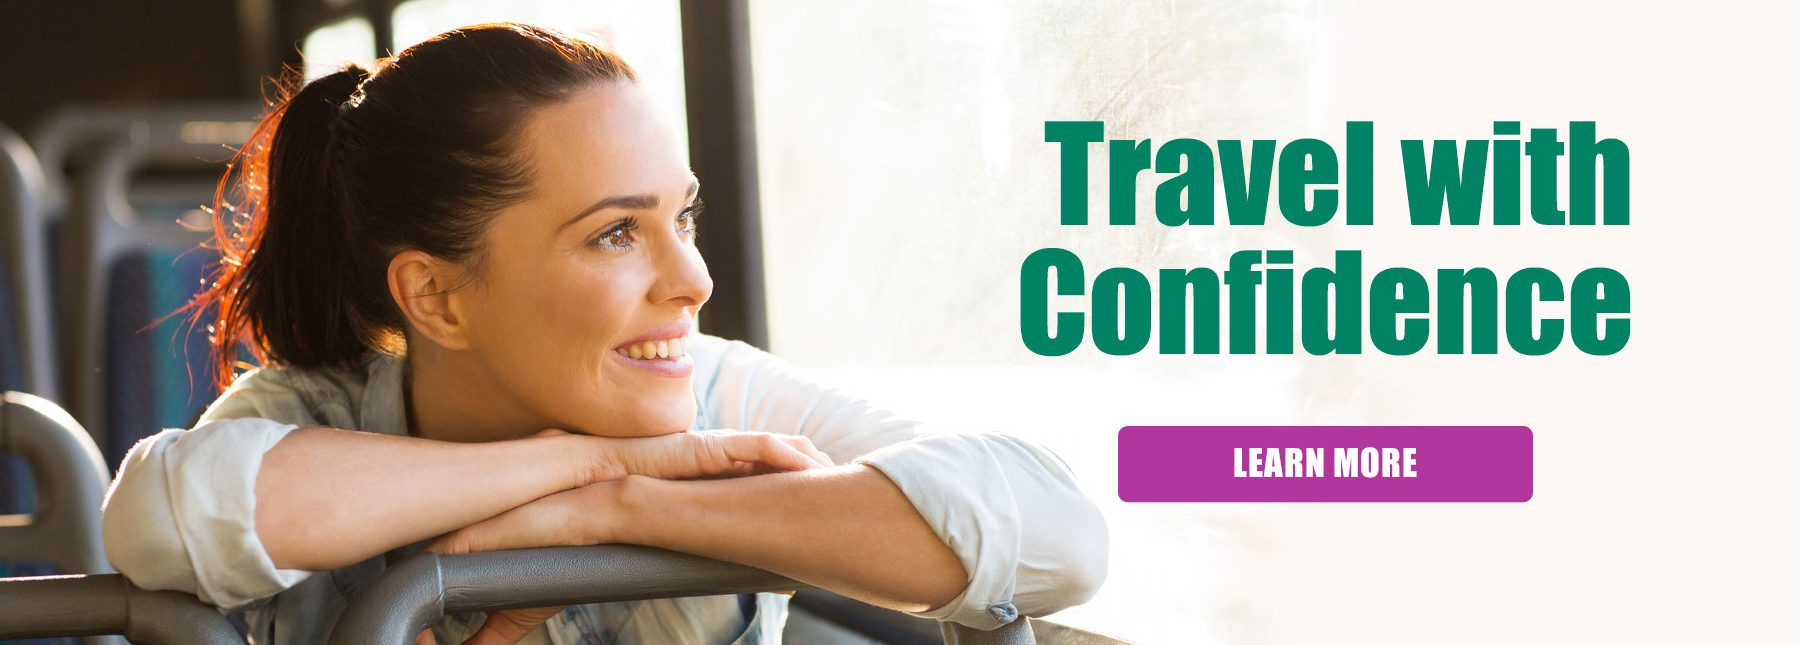 Travel With Confidence Grapev2 1800x745